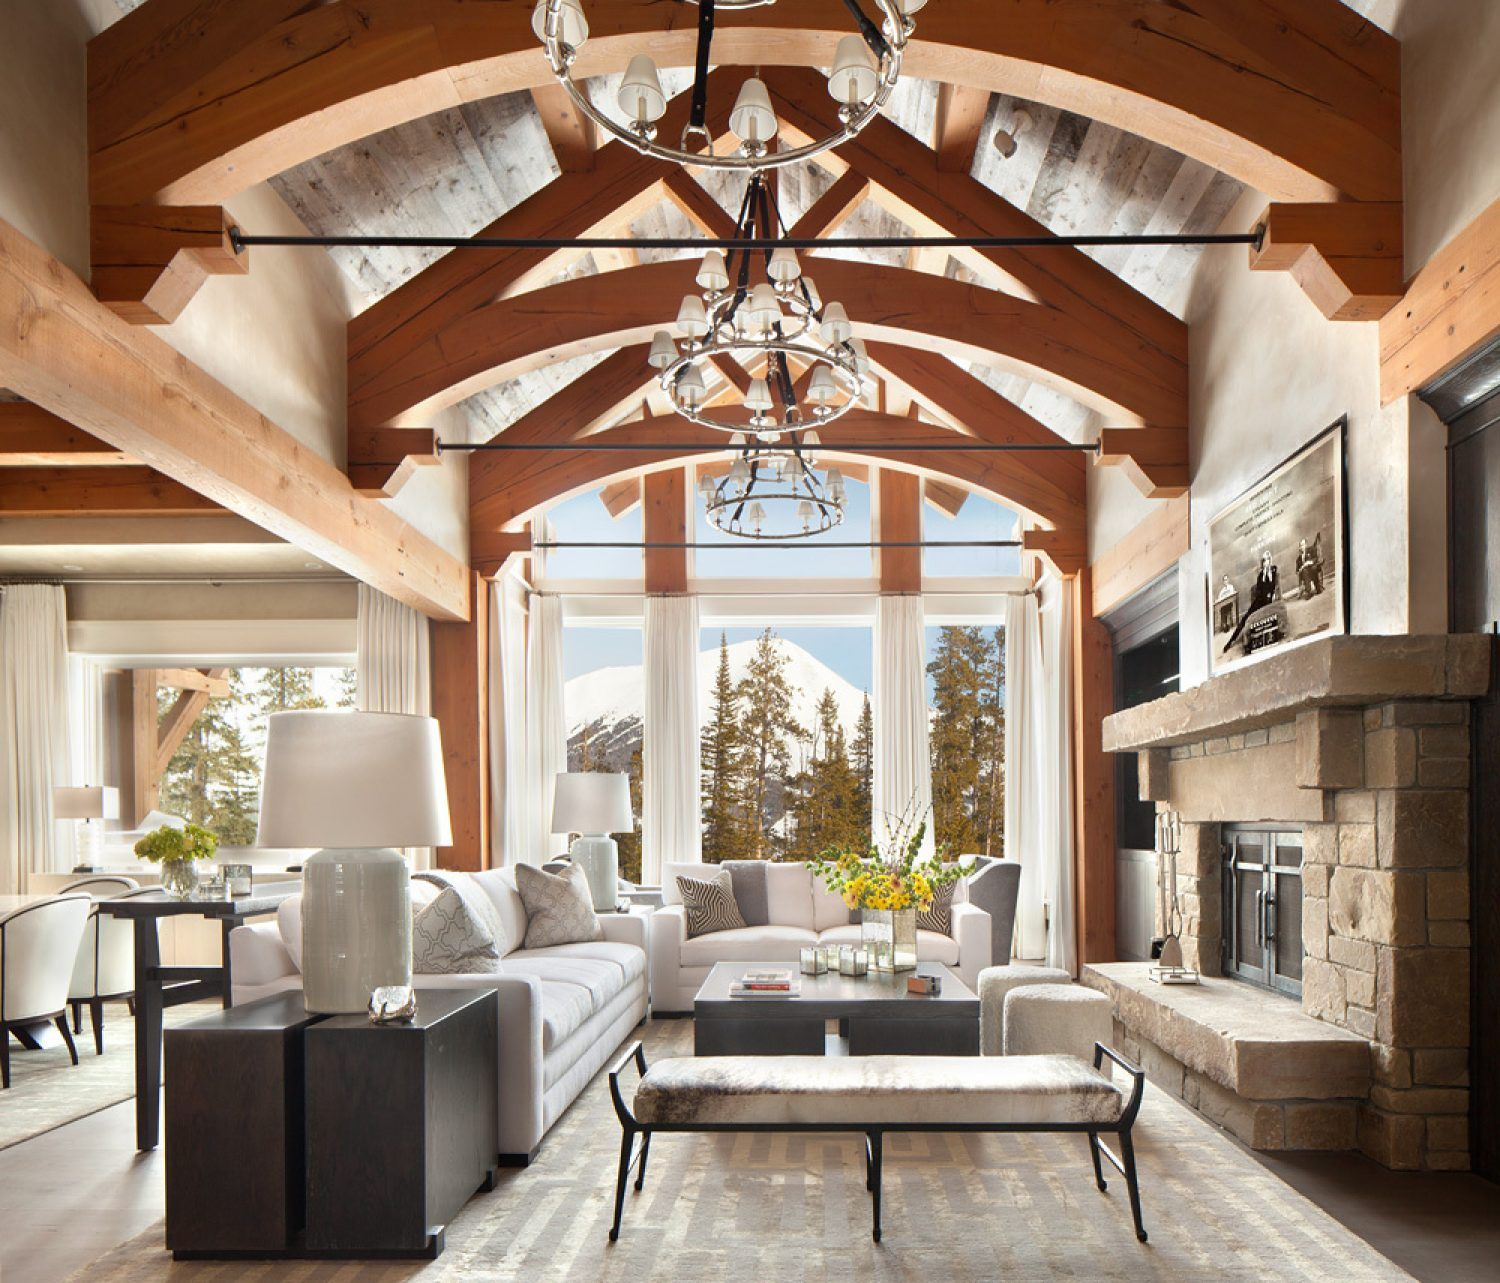 Construction Projects Prg Group Modern Rustic Living Room Modern Mountain Home Rustic Living Room [ 1283 x 1500 Pixel ]